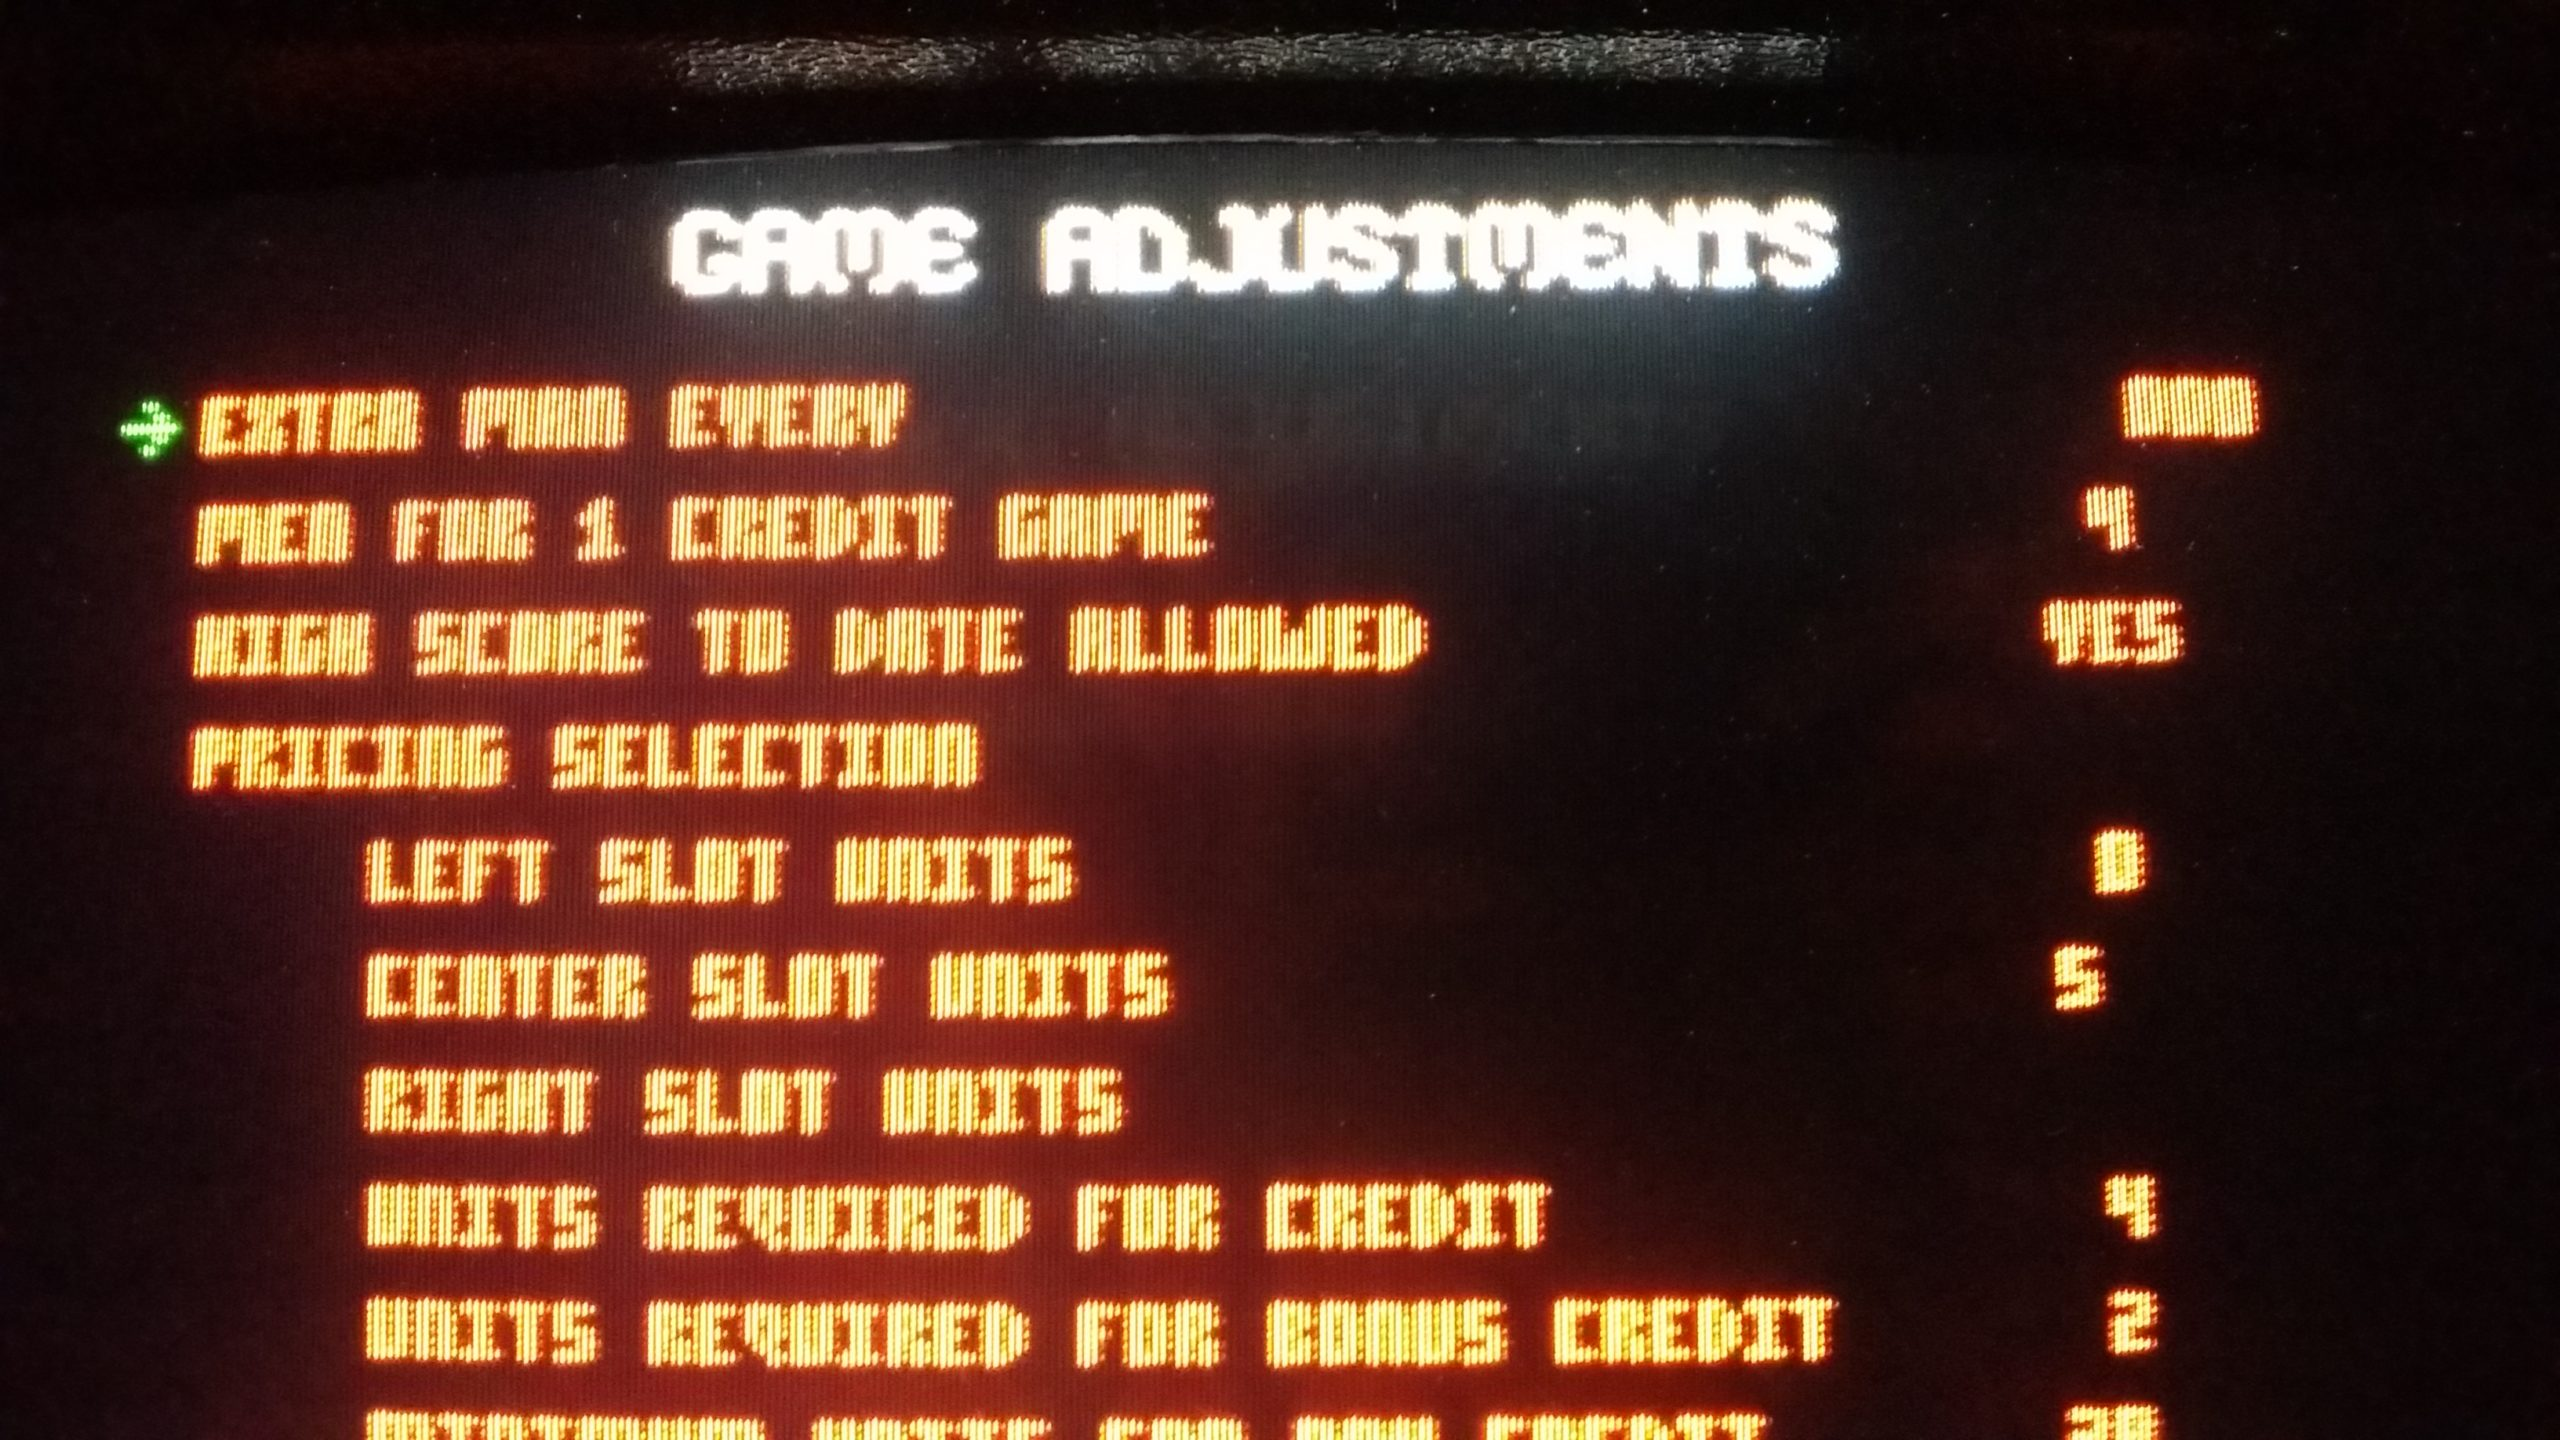 joust game adjustments screen with glitches